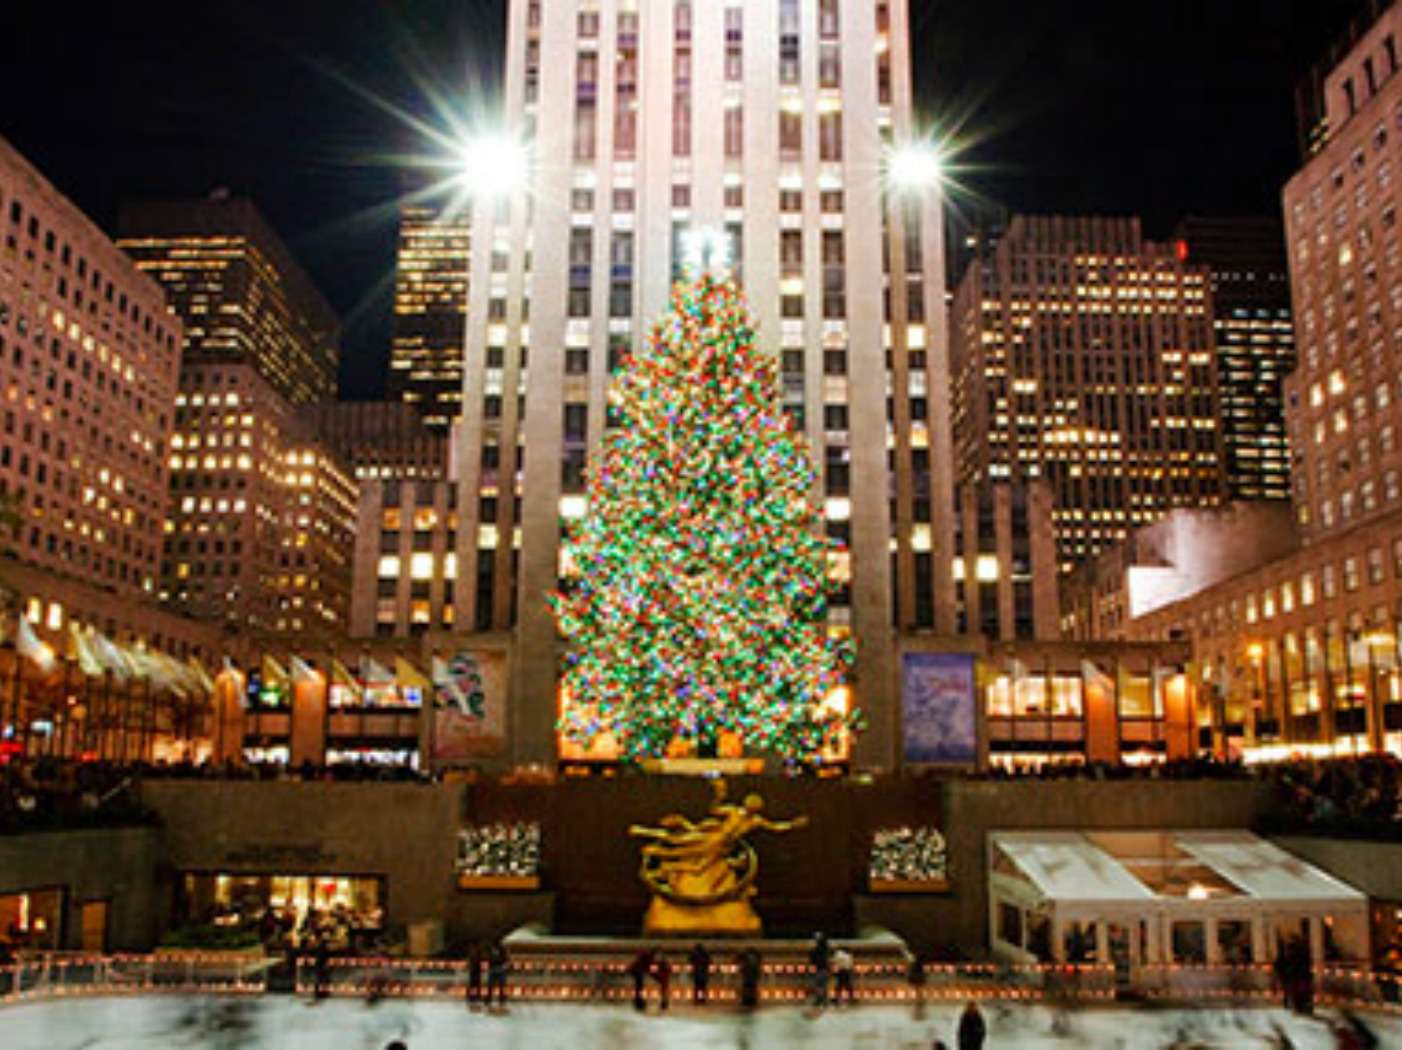 NYC Rockefeller Center at Christmas